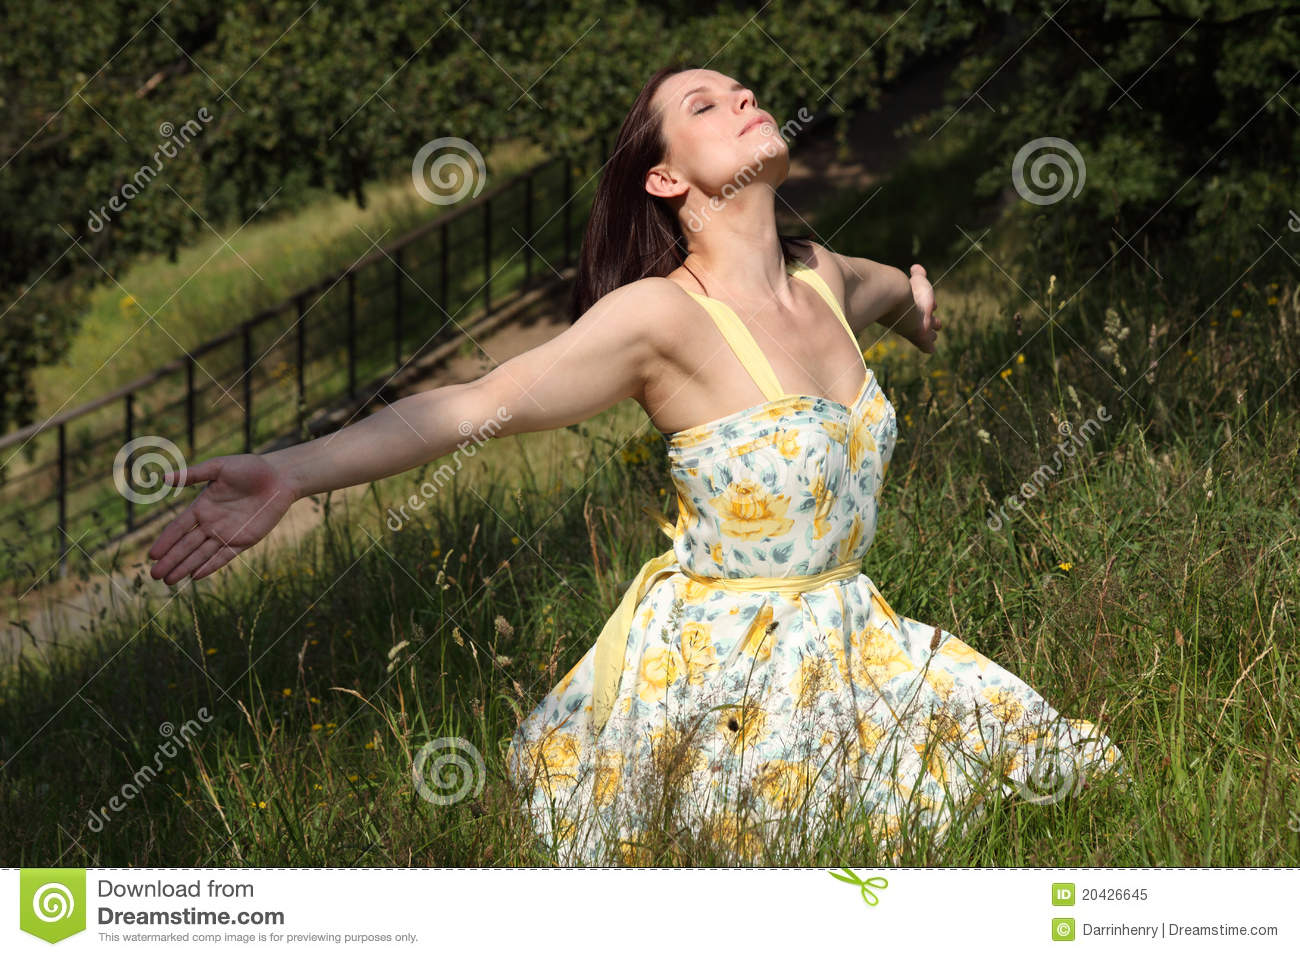 Woman soaking up summer sun in countryside